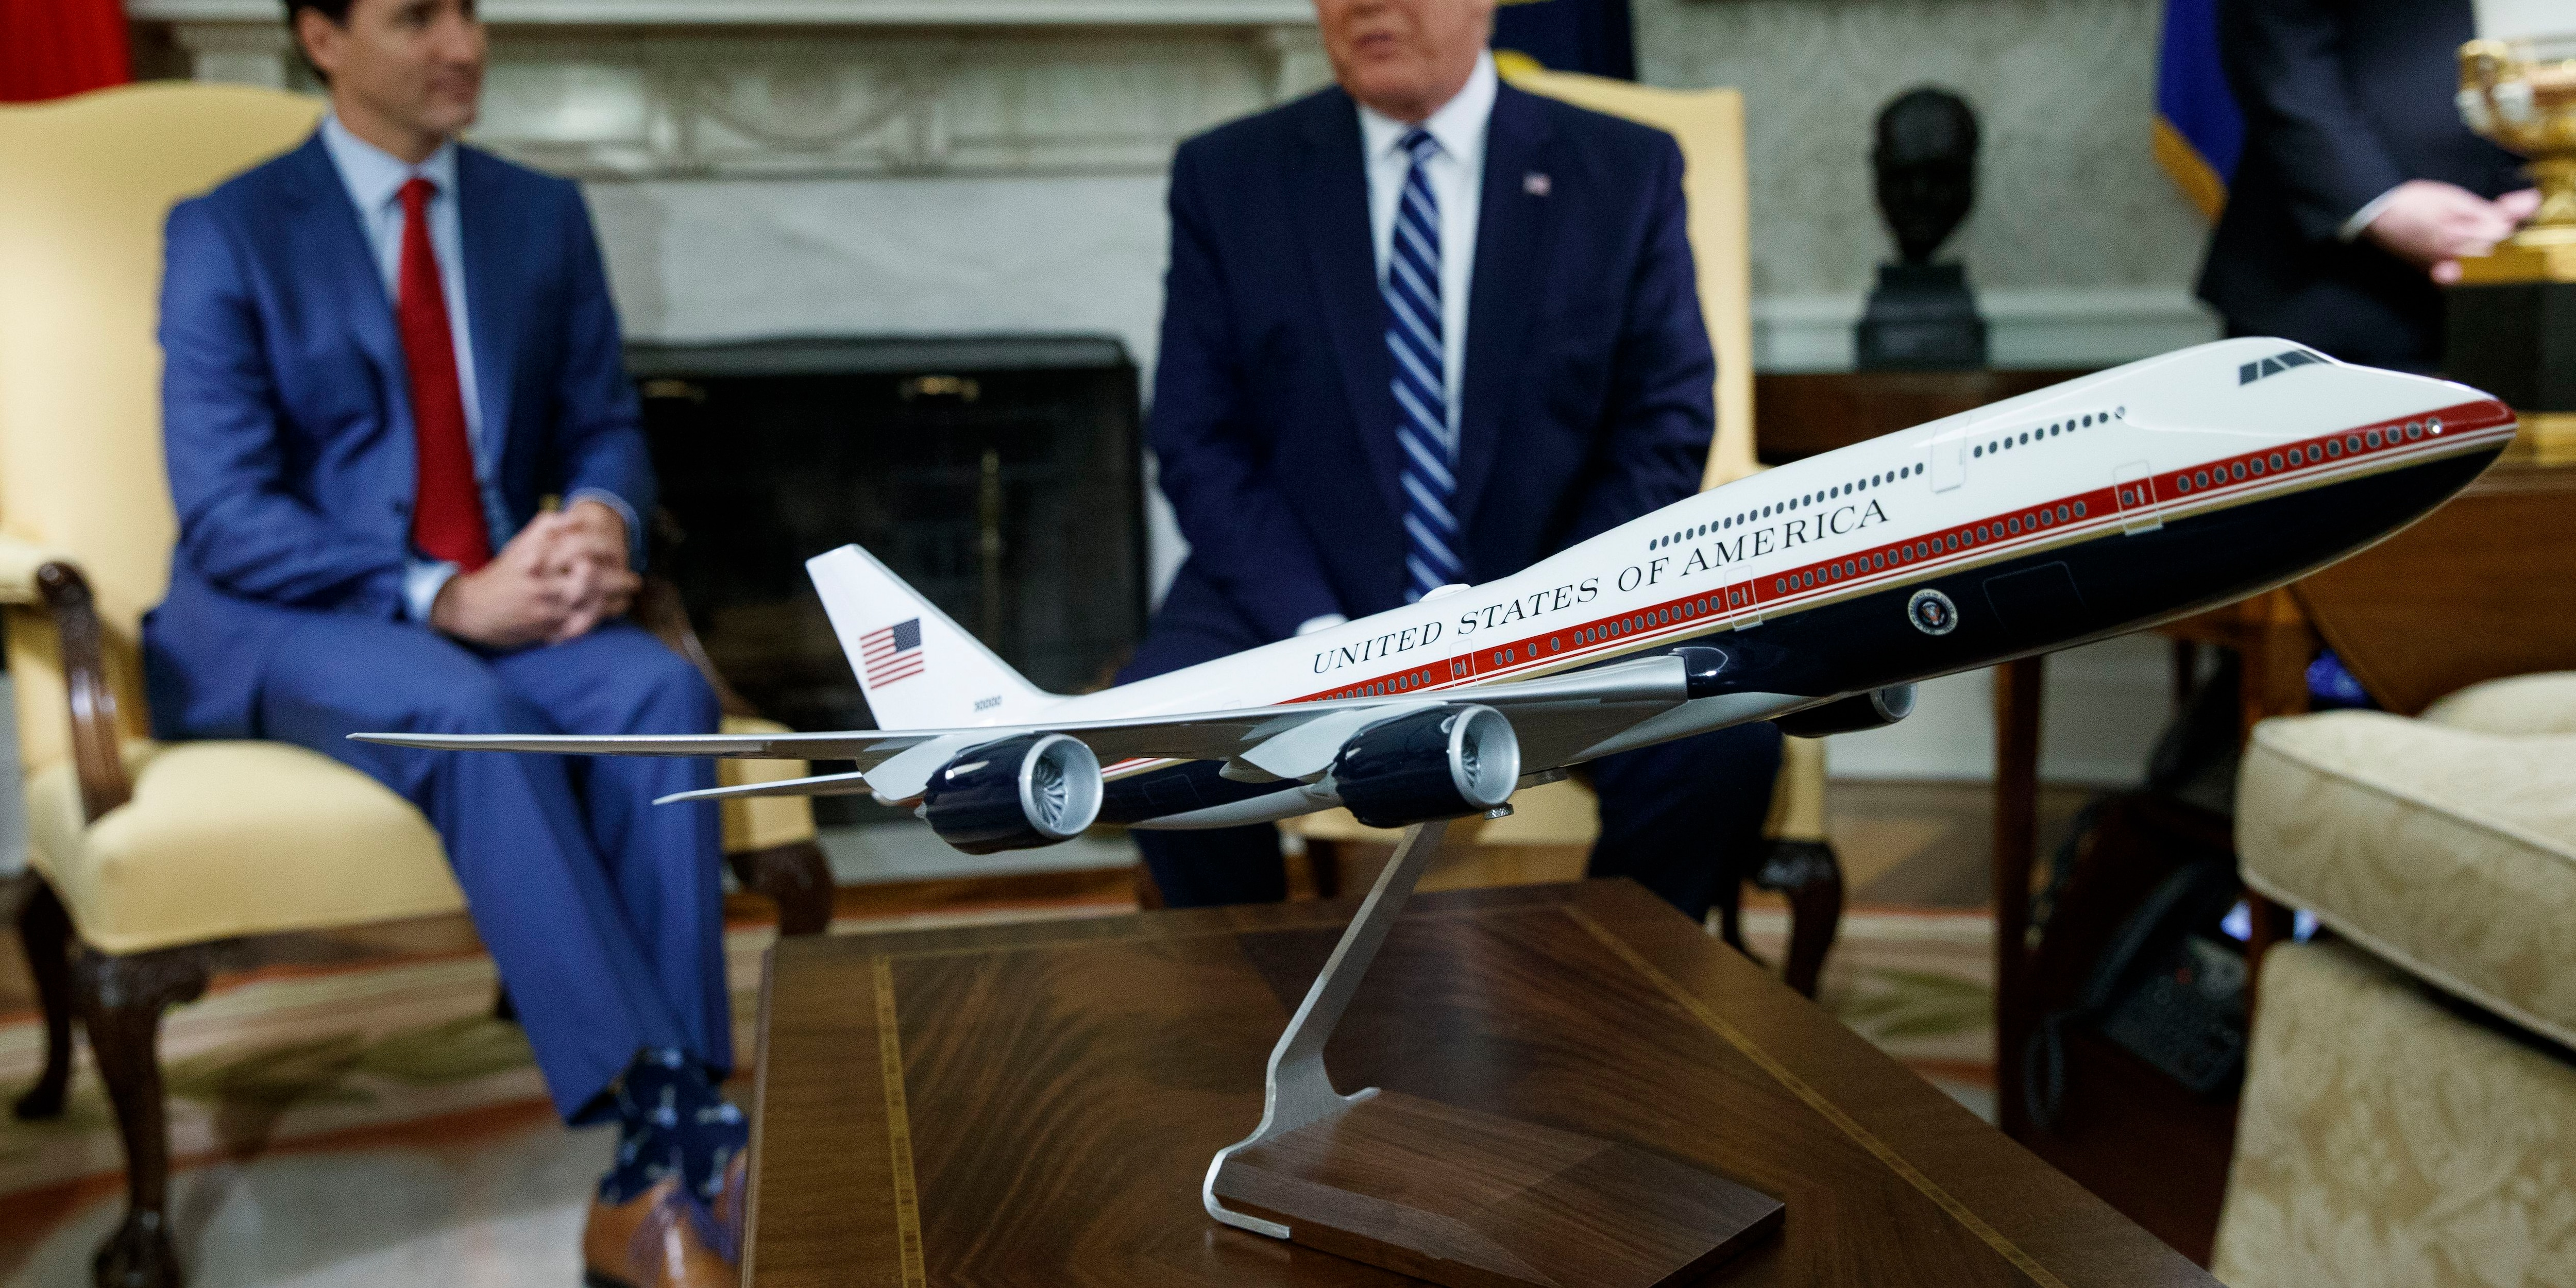 meilleure sélection eed55 b4f7e Trump shows off proposed red, white and blue Air Force One ...